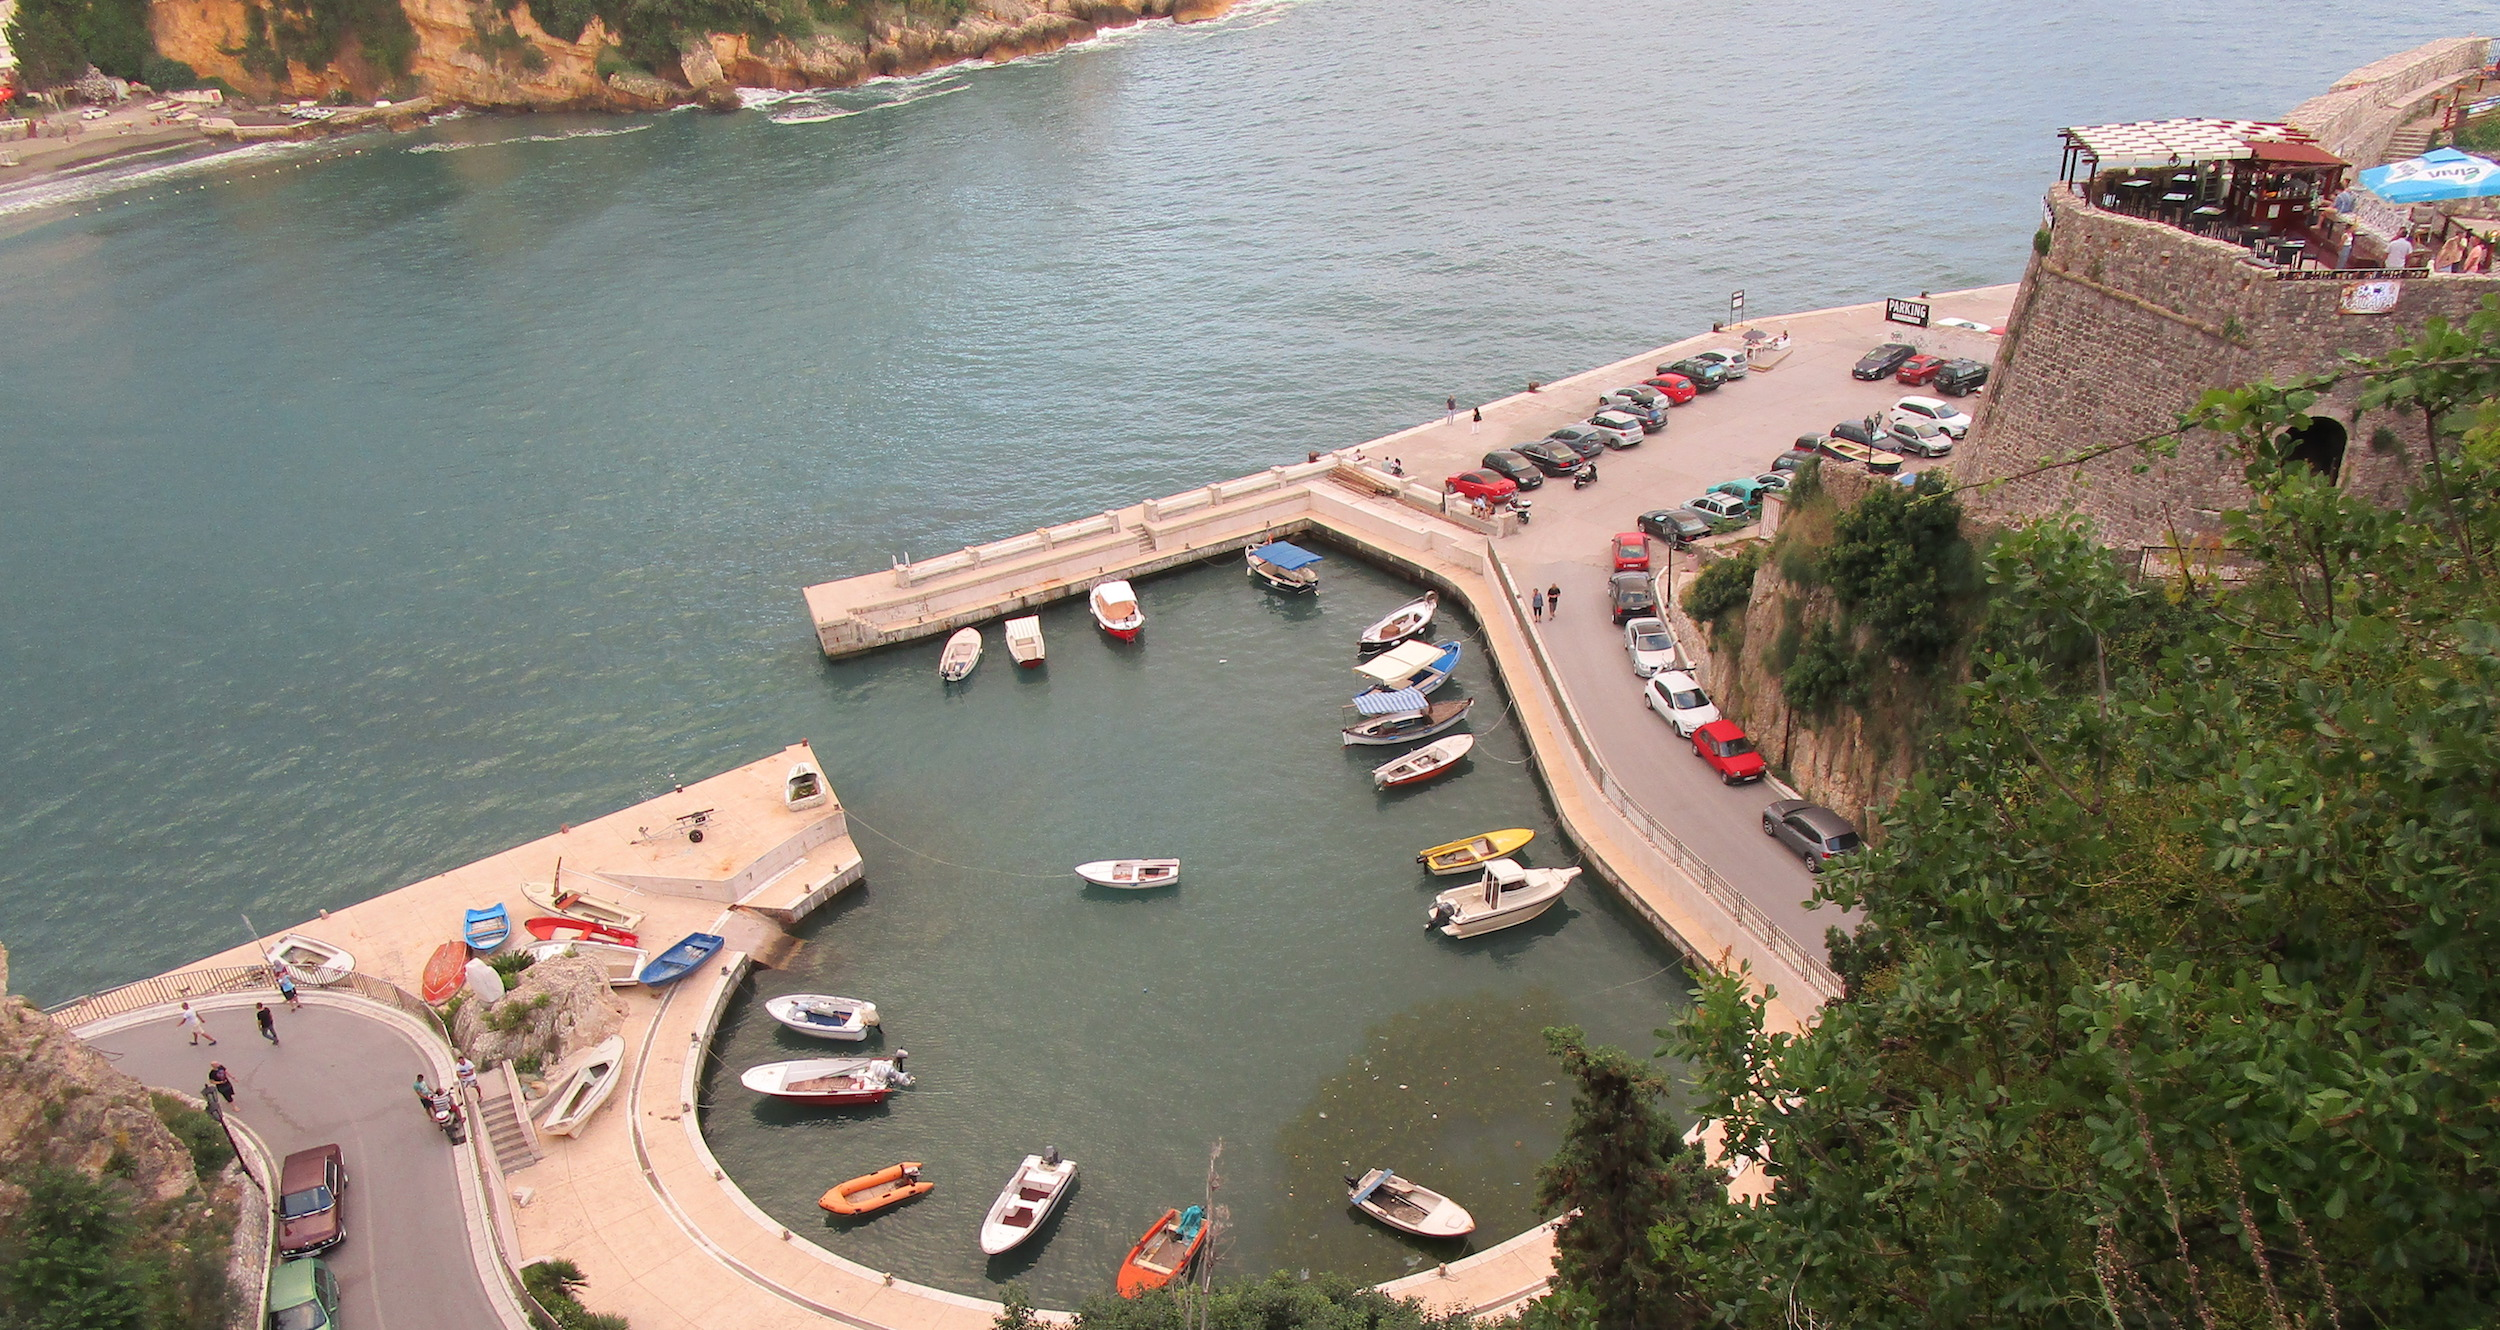 View of Ulcinj Harbour, Montenegro